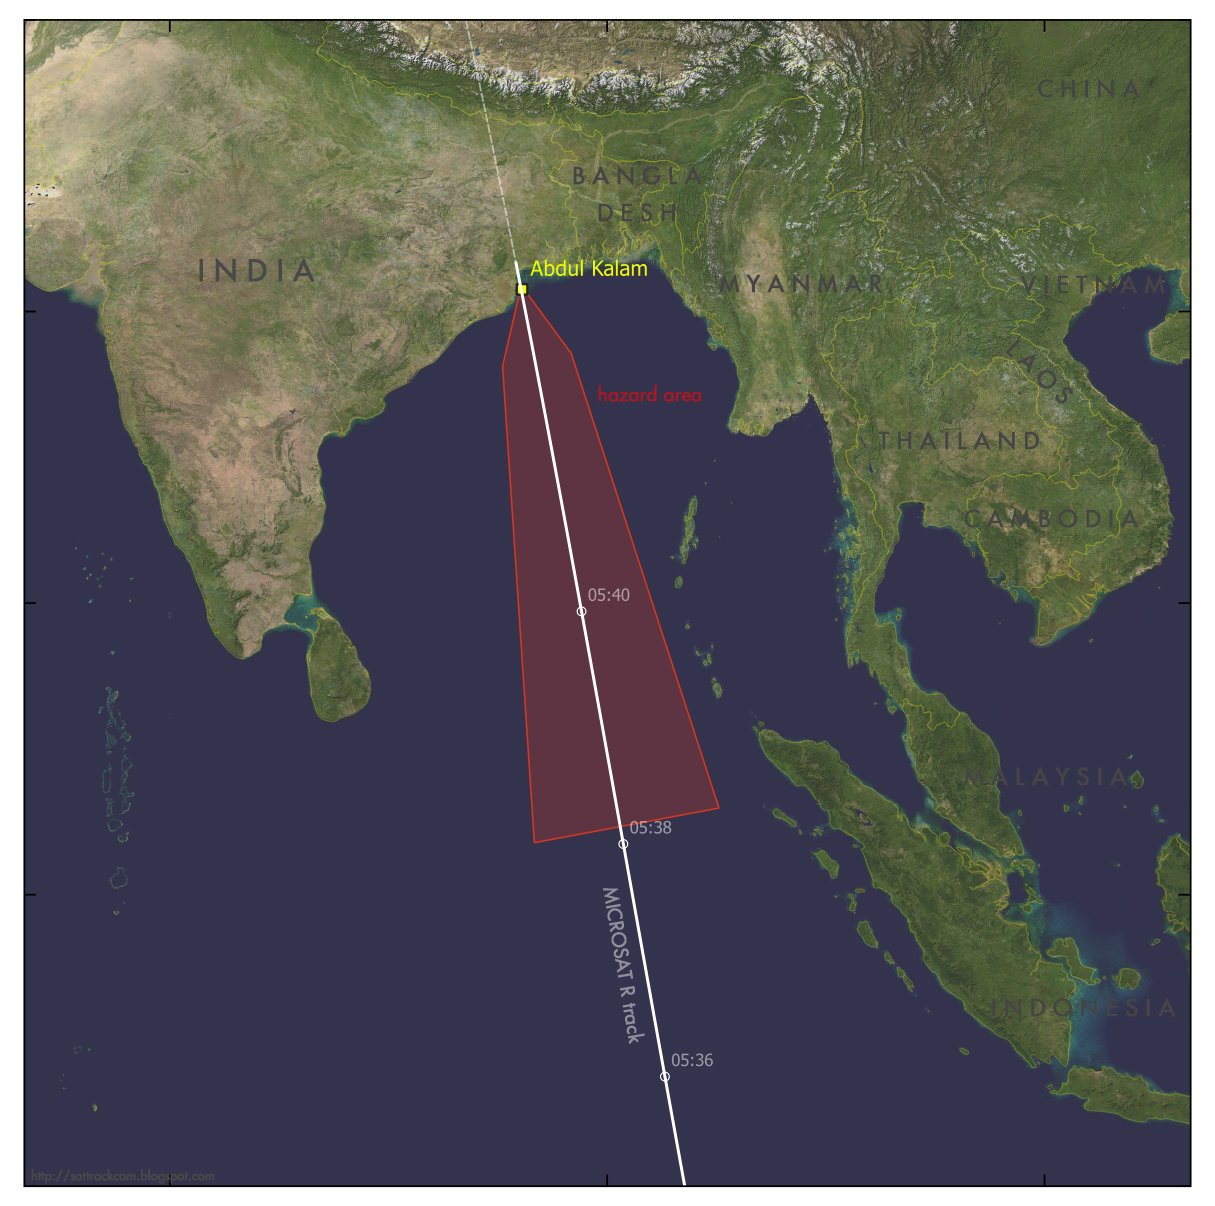 Indian Ballistic Missile Defence Programme 6691366_original